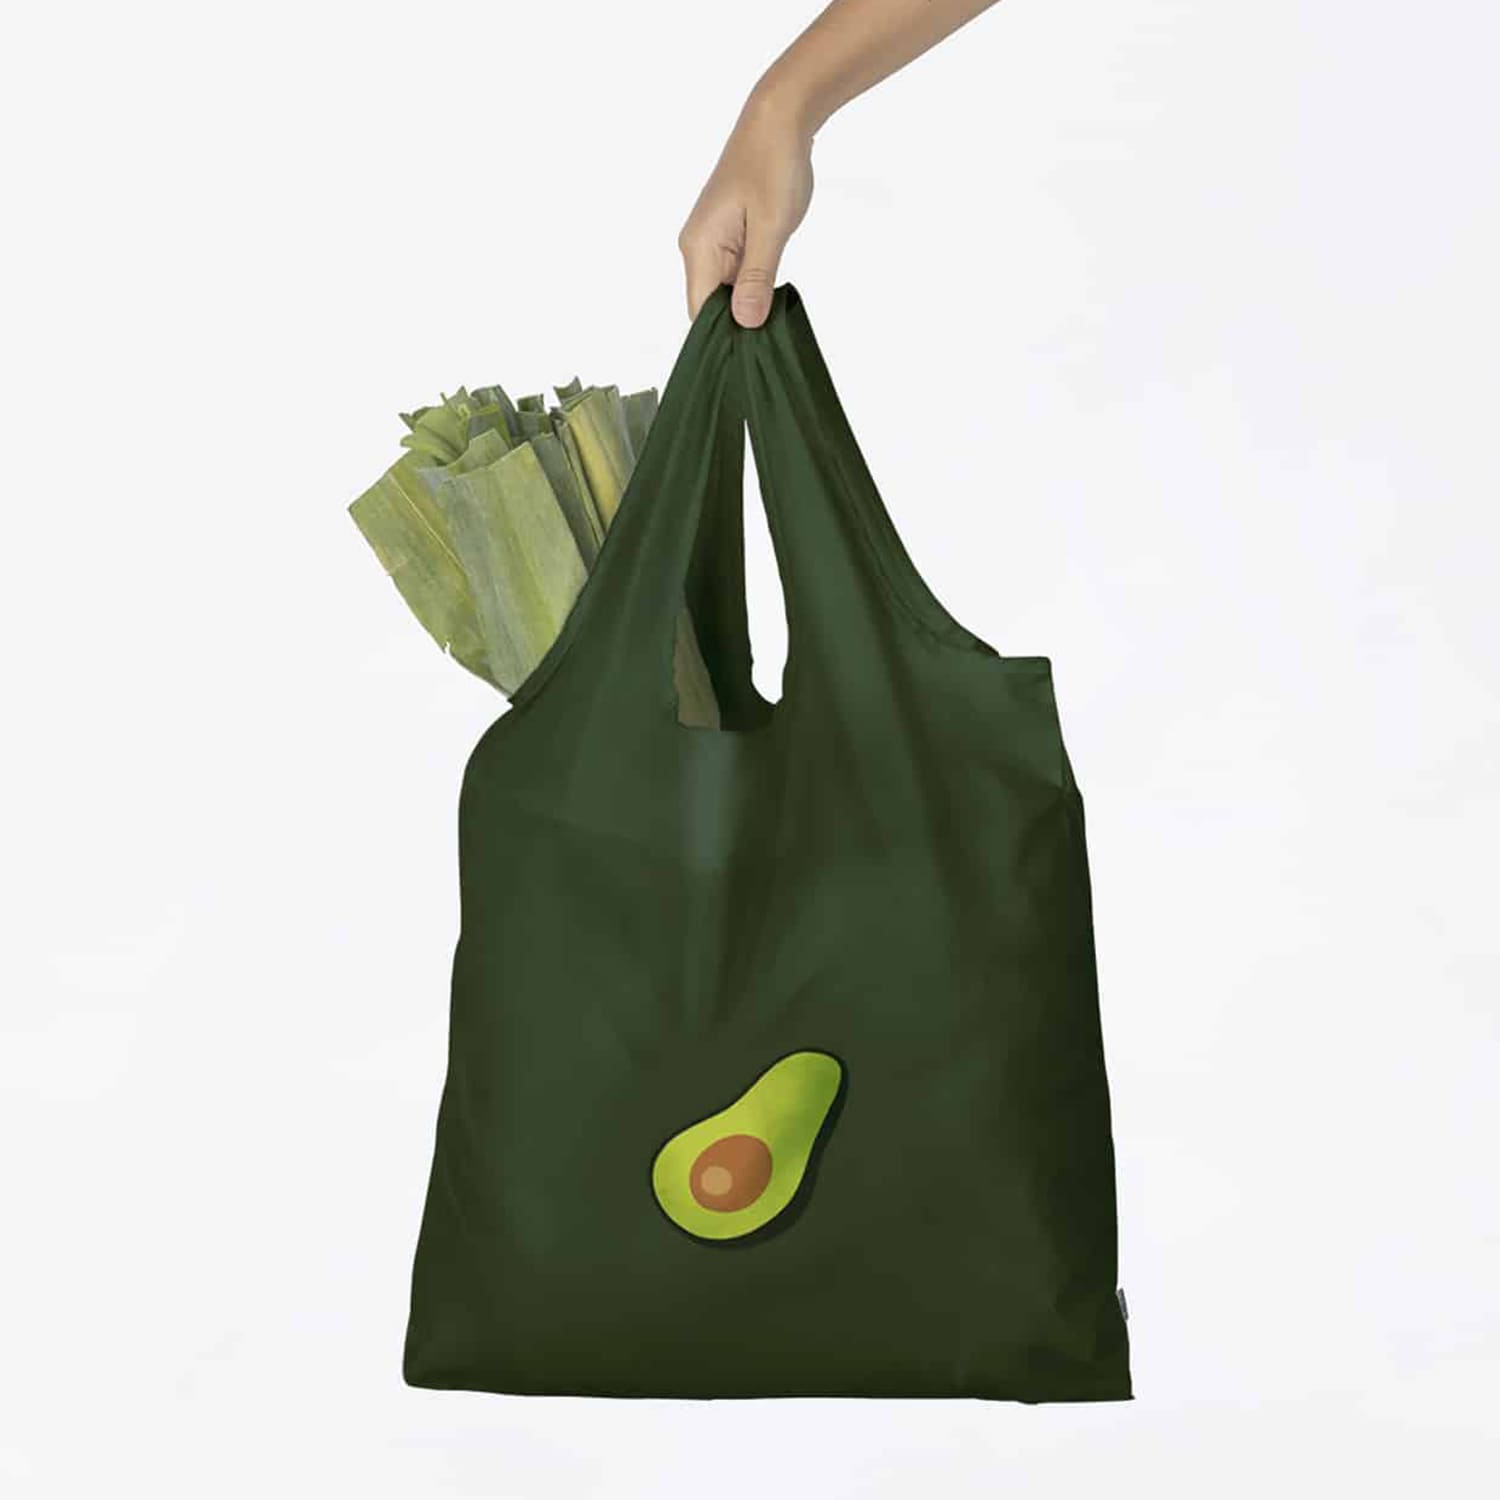 Go Green Reusable Bag - Avocado Avocado - Doiy - Fruit